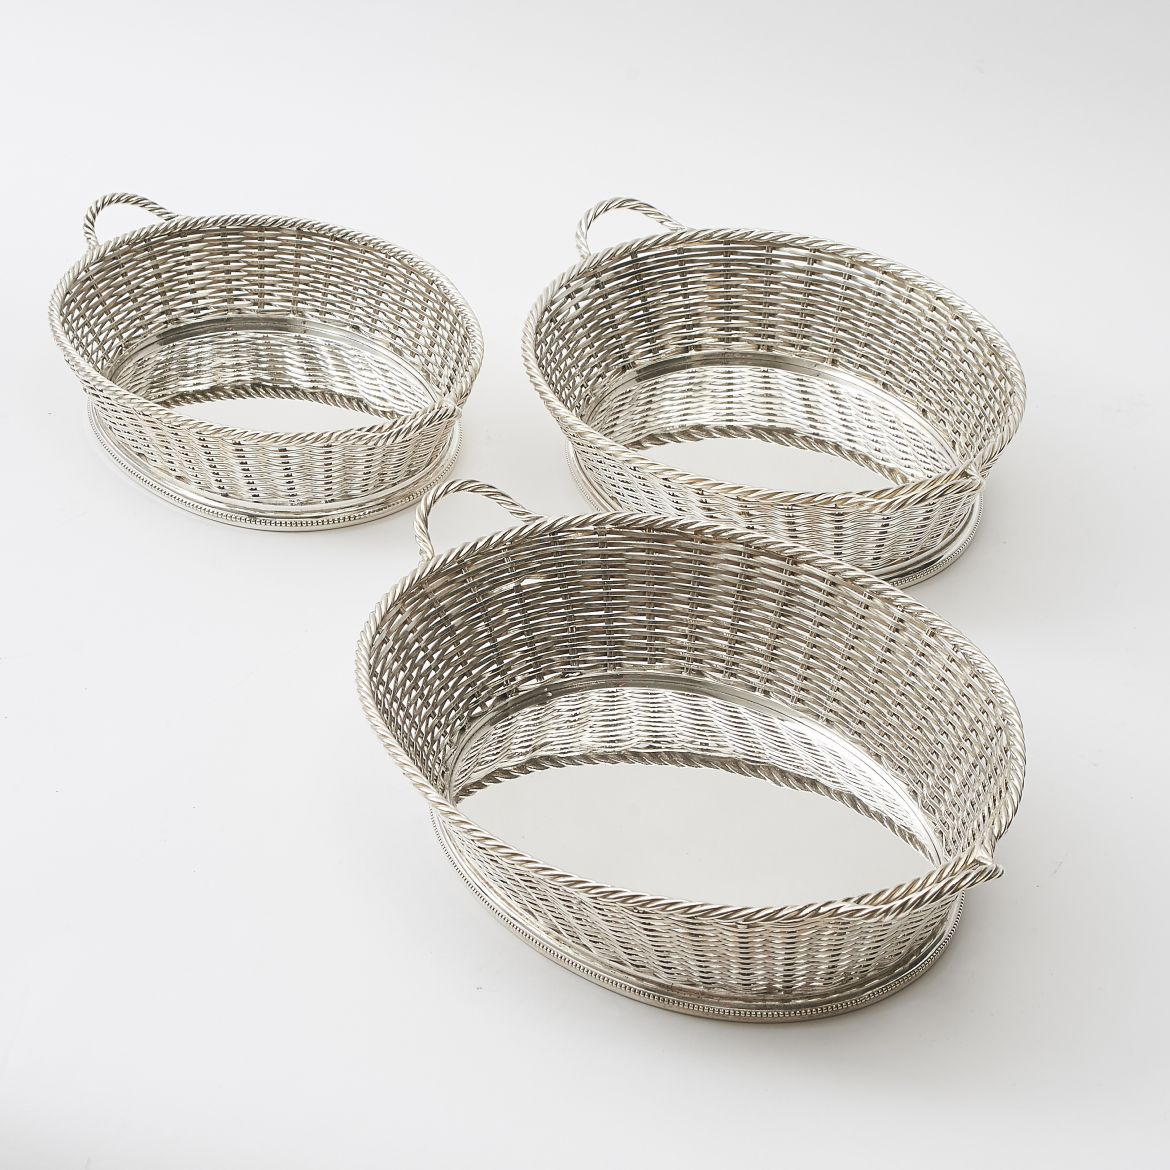 Set 3 Silver Plate Baskets